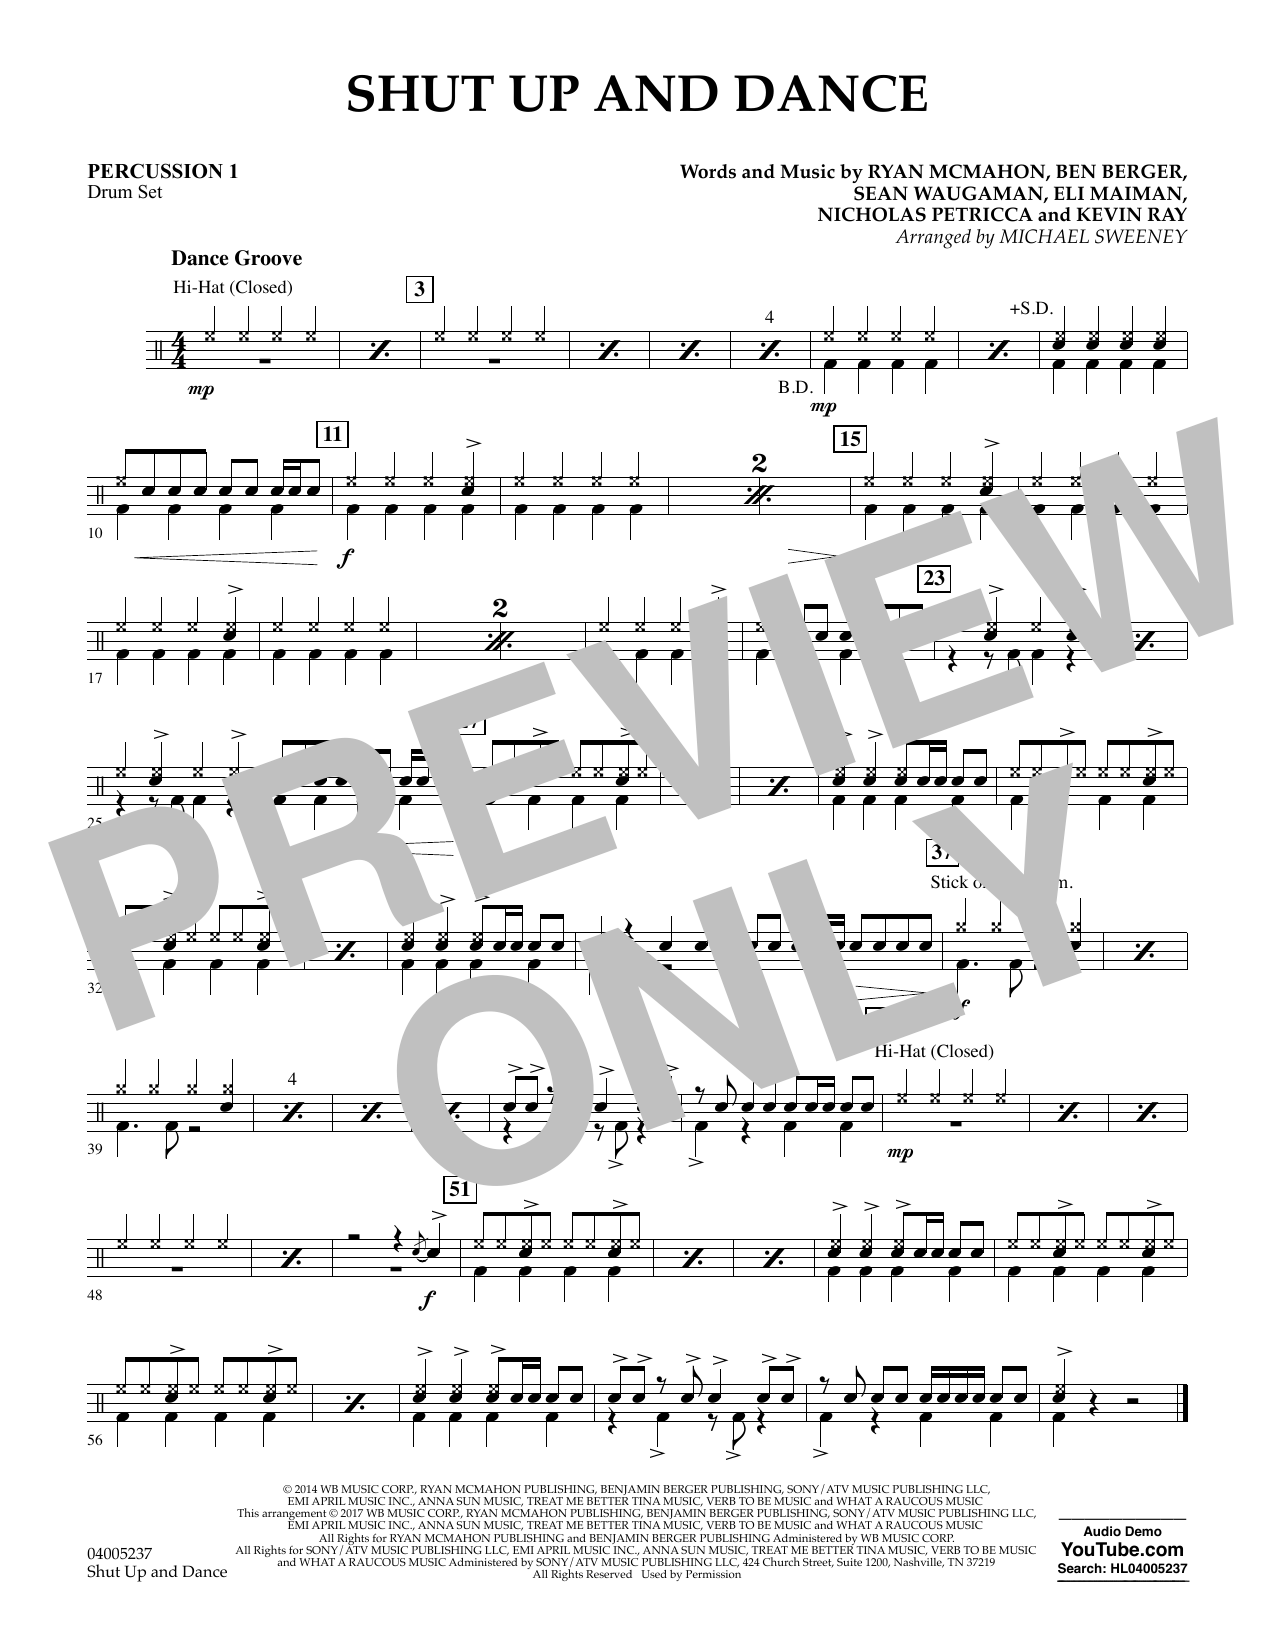 Shut Up and Dance - Percussion 1 (Concert Band)